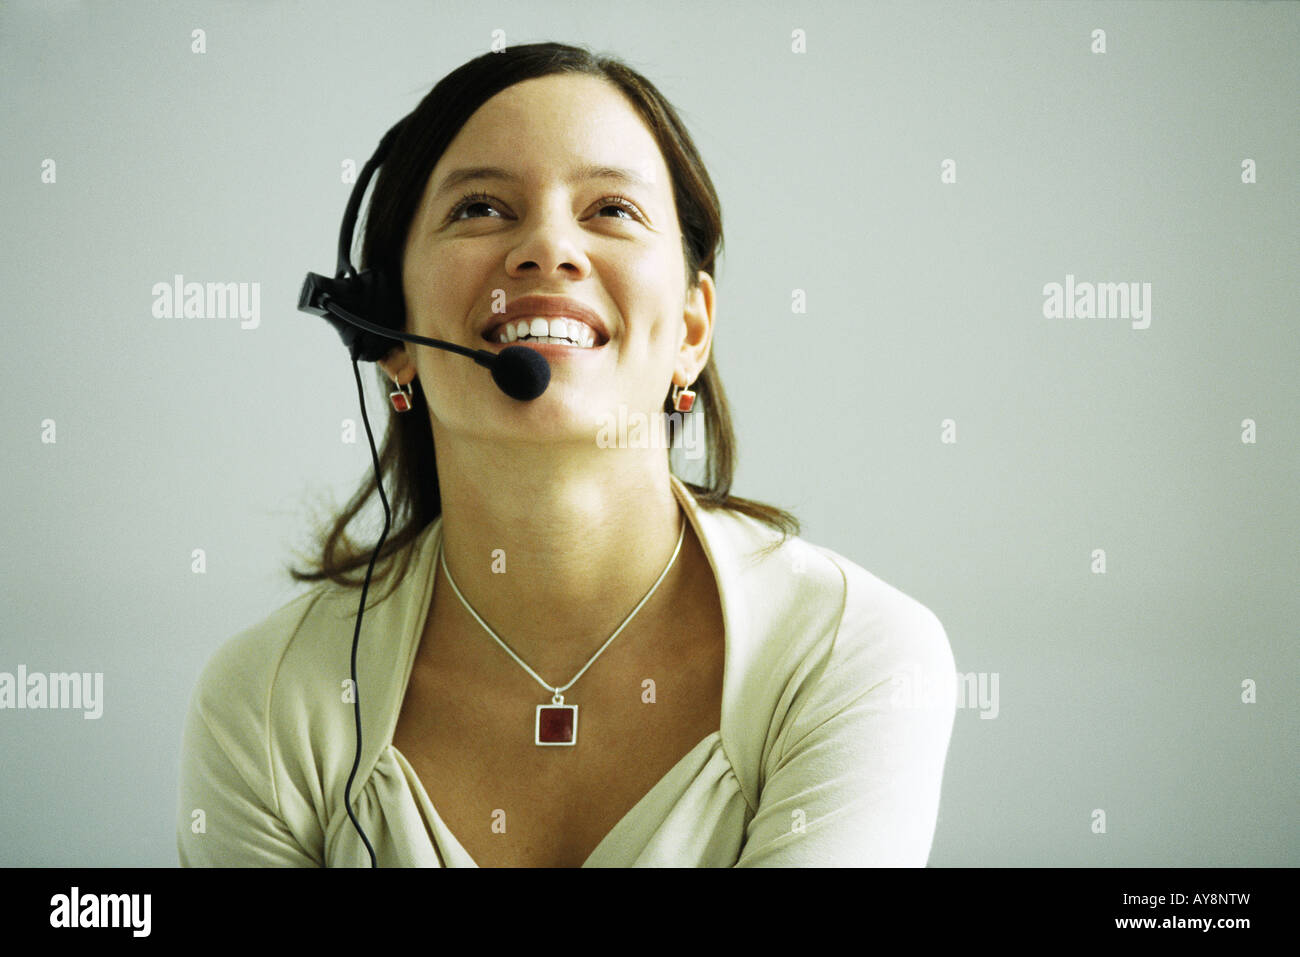 Woman wearing headset, head back, smiling, looking up - Stock Image